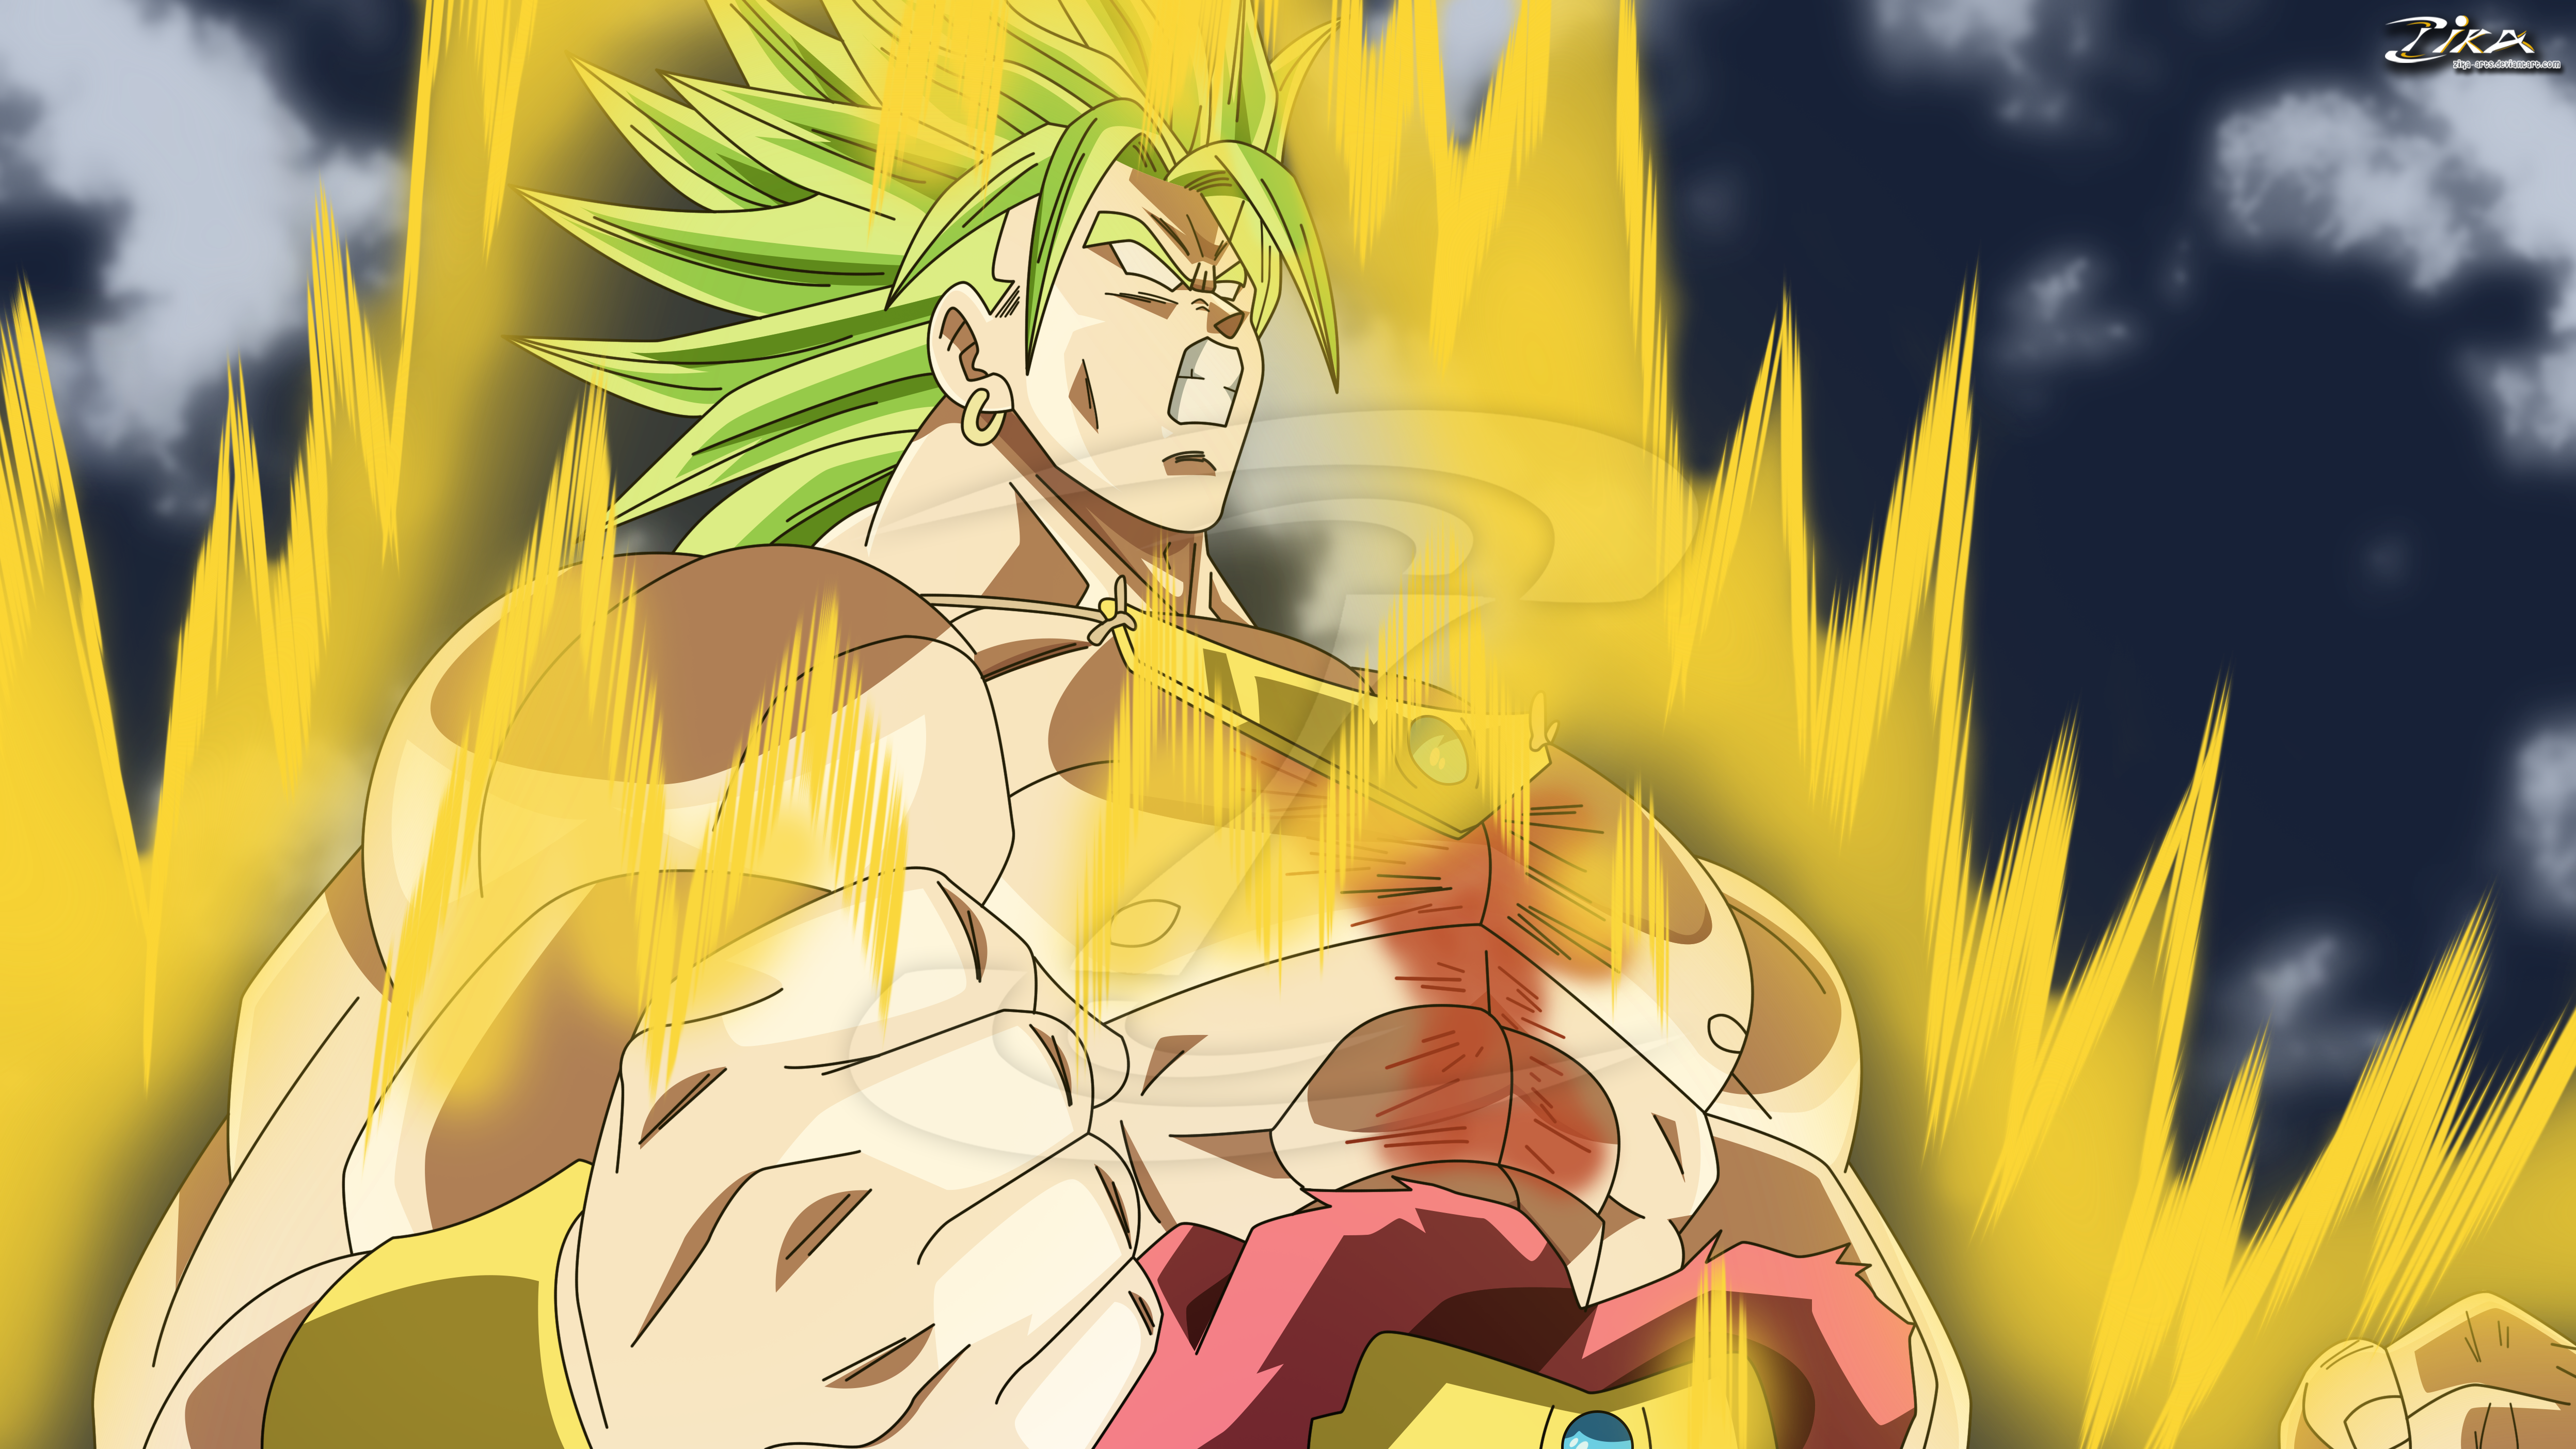 Broly the Legendary Super saiyan by zika-arts on DeviantArt